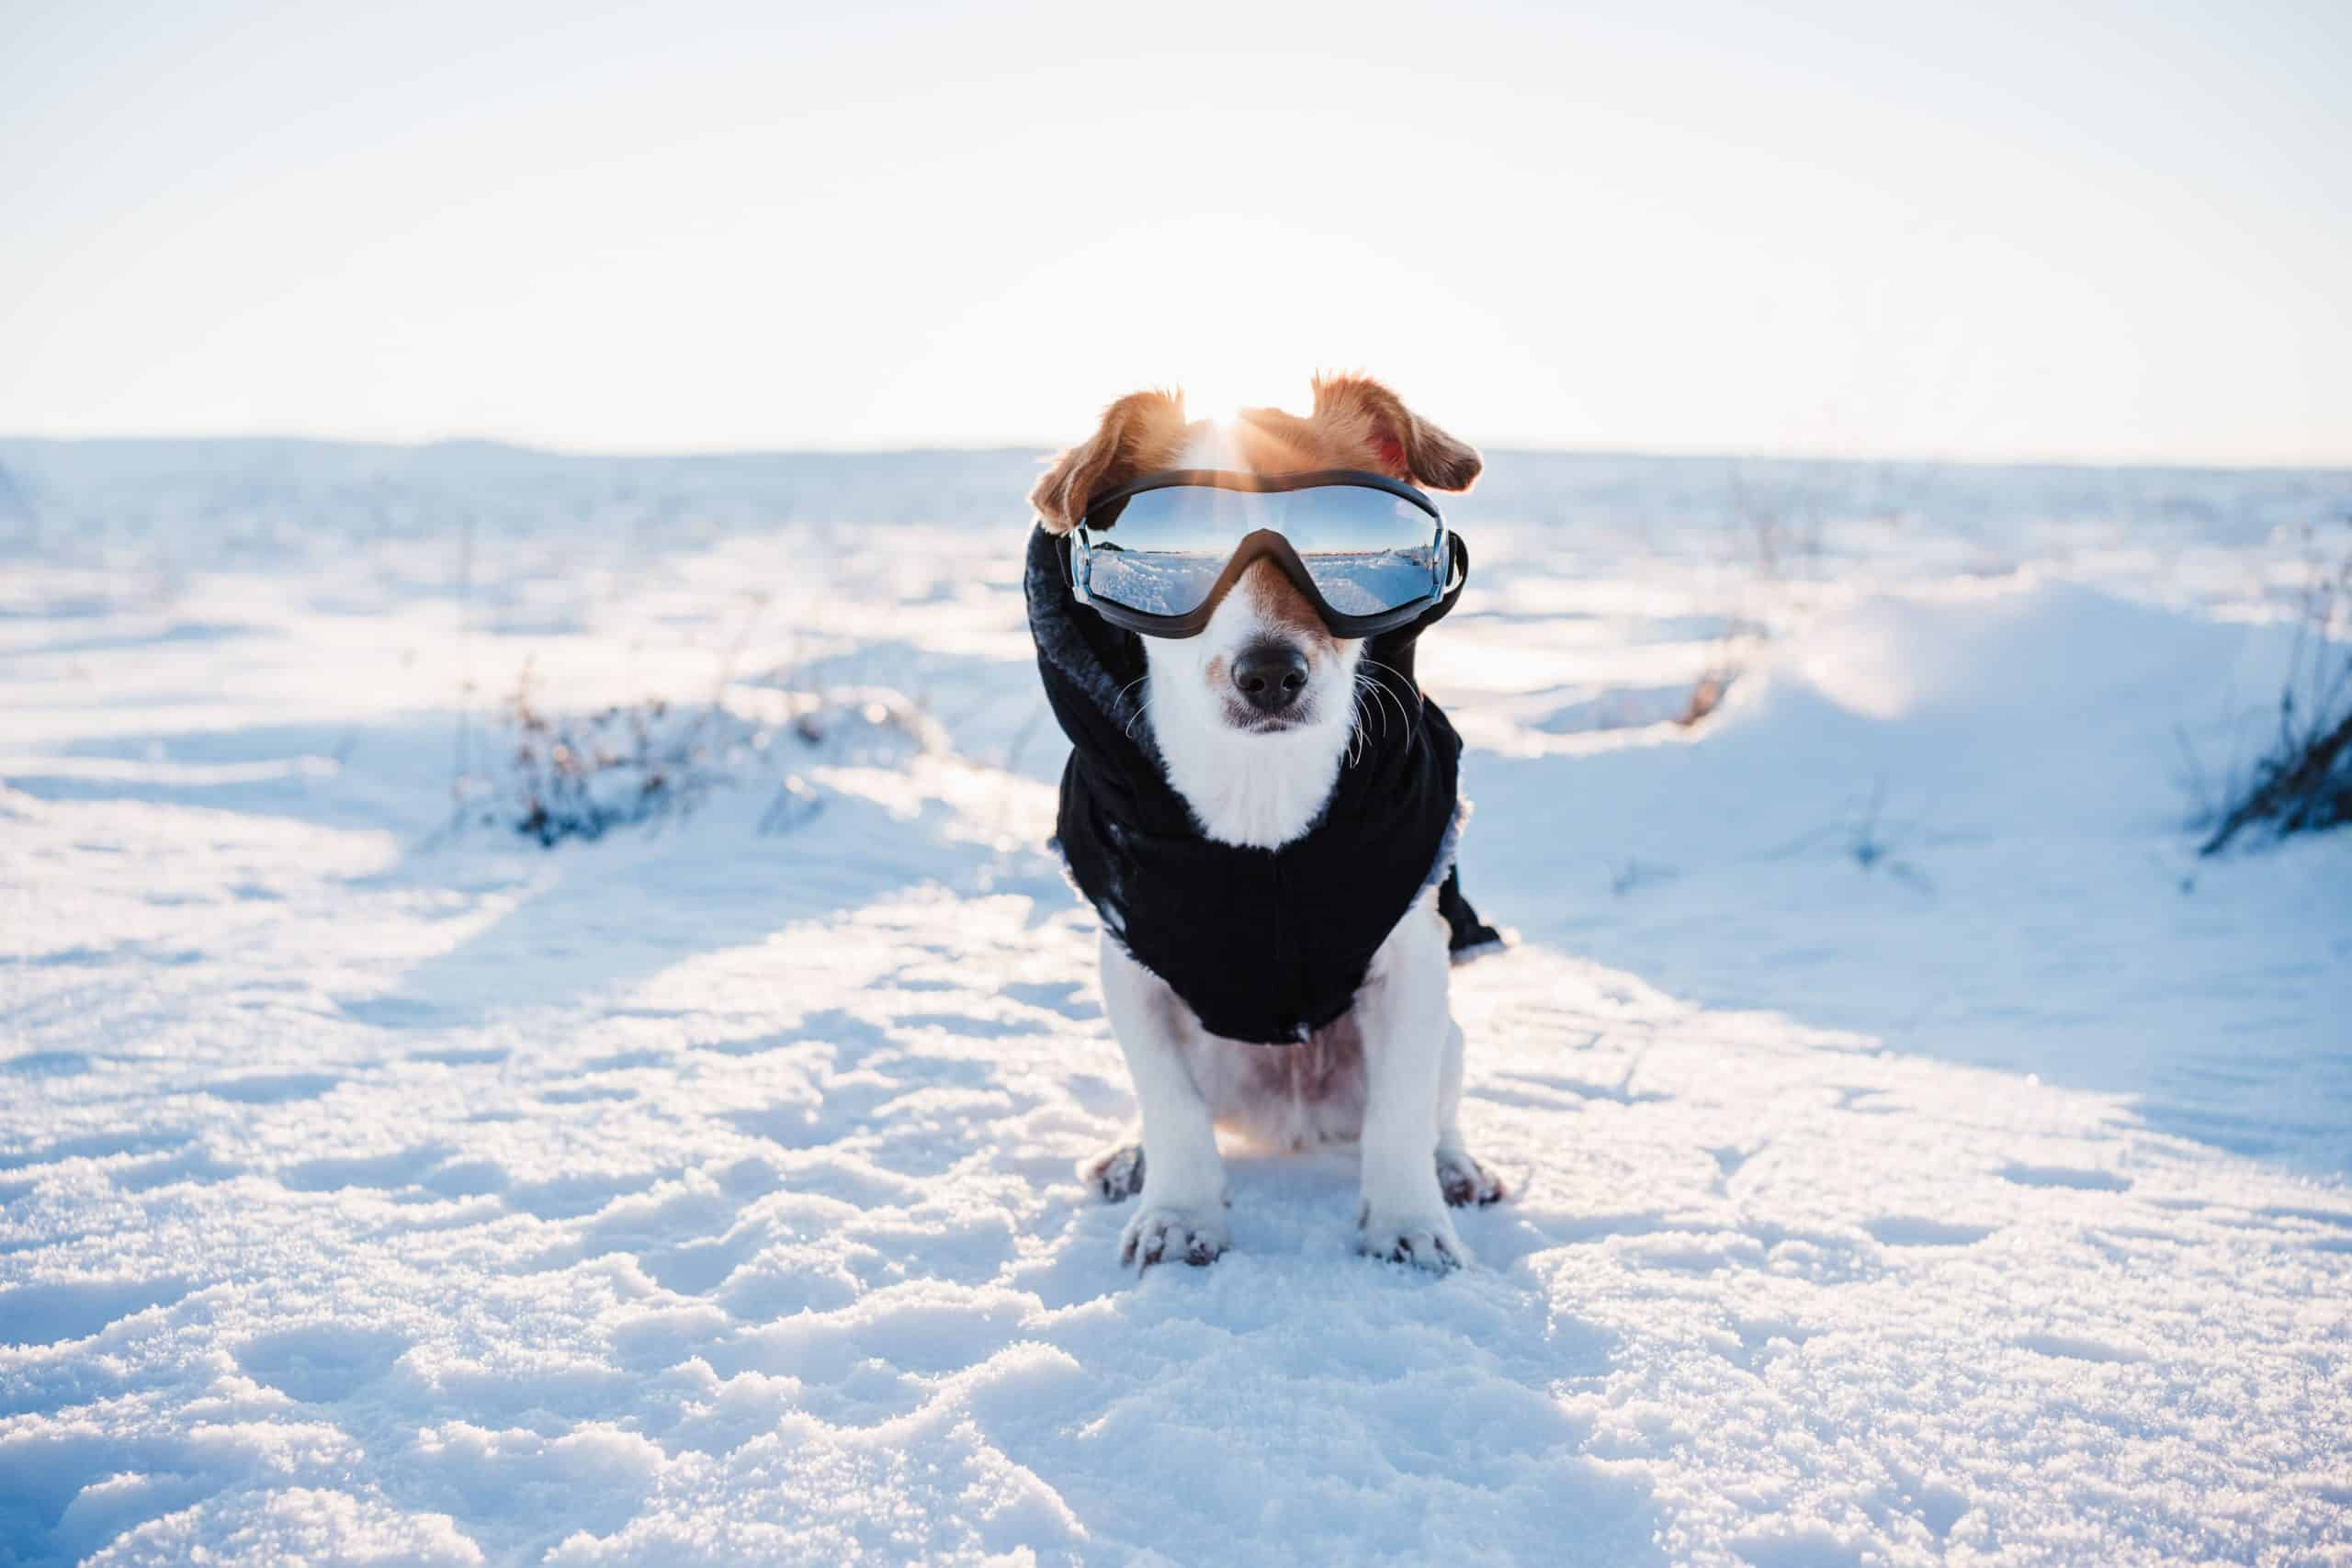 Dog wears a winter coat and snow goggles. Your dog needs sunscreen if he has light-colored hair or nose, if he spends a lot of time outdoors, or if he has any bald spots.